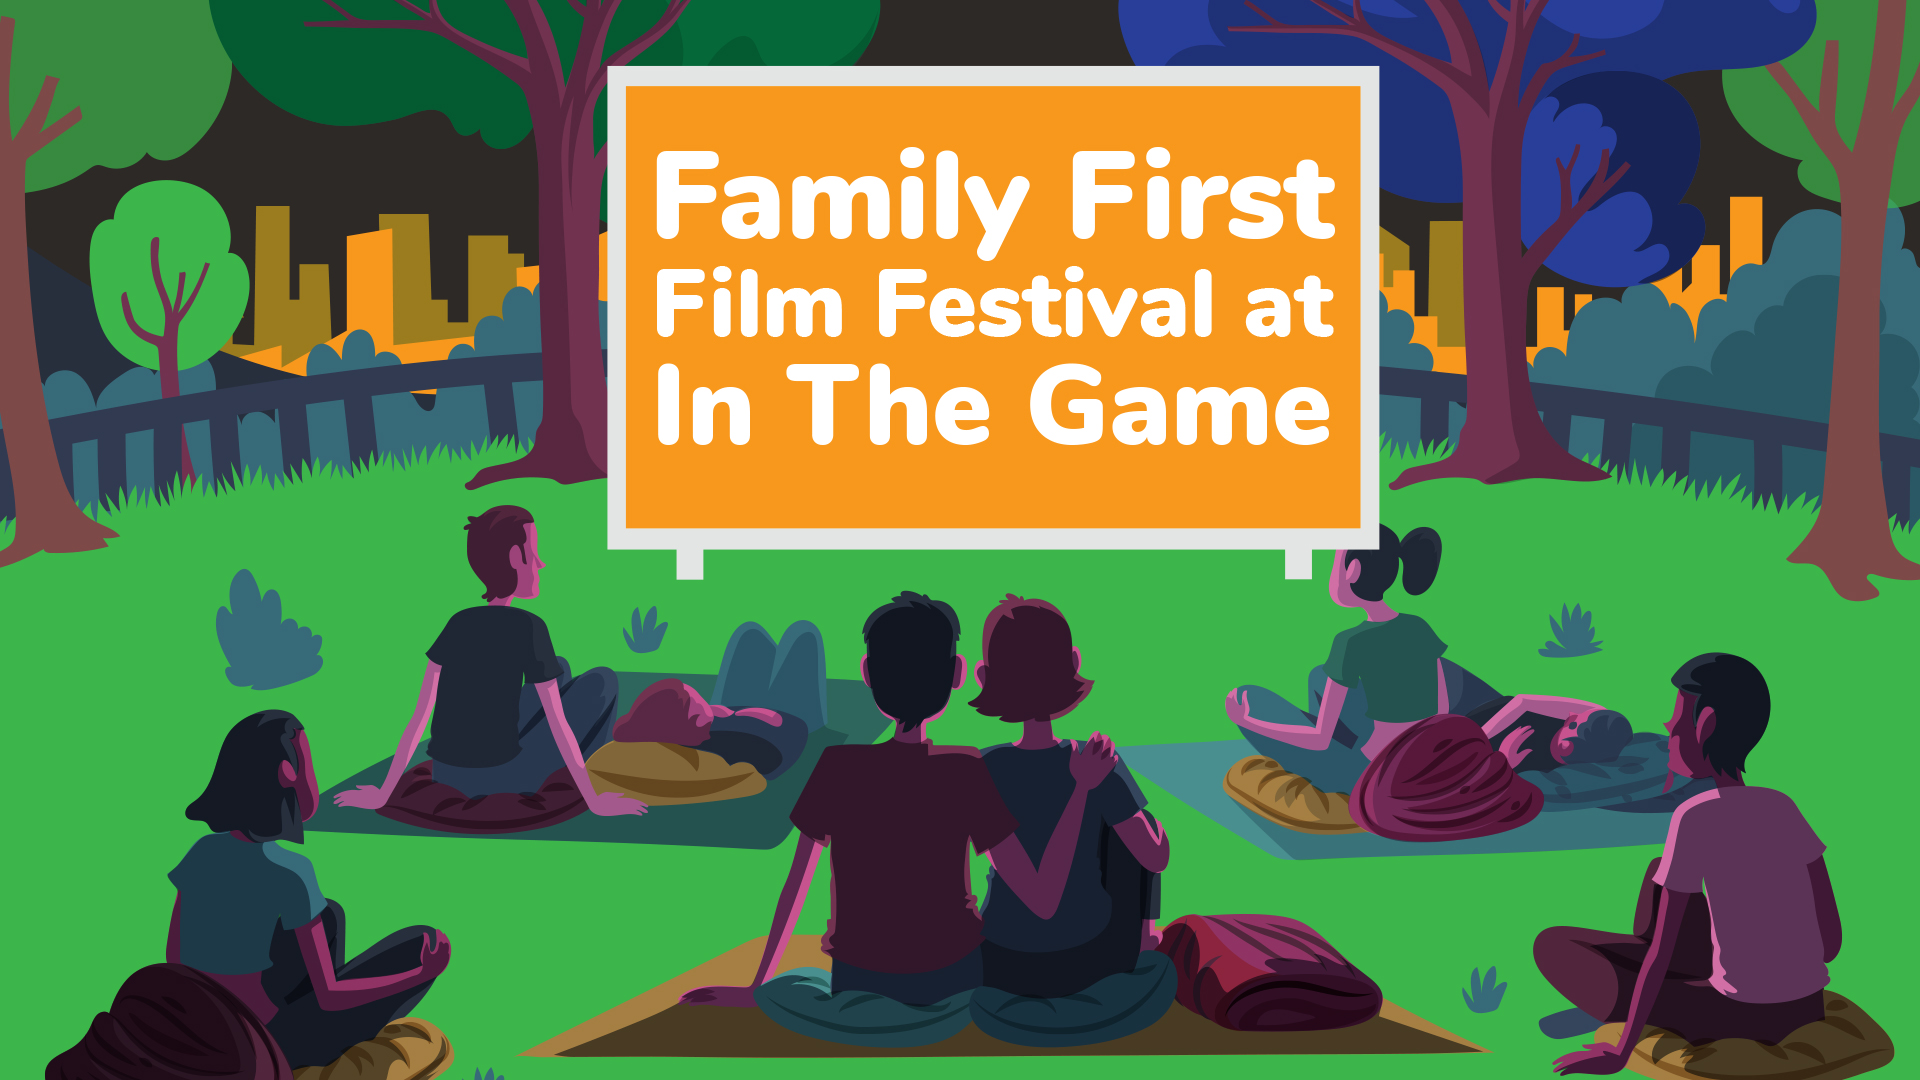 Family First Film Festival at In The Game